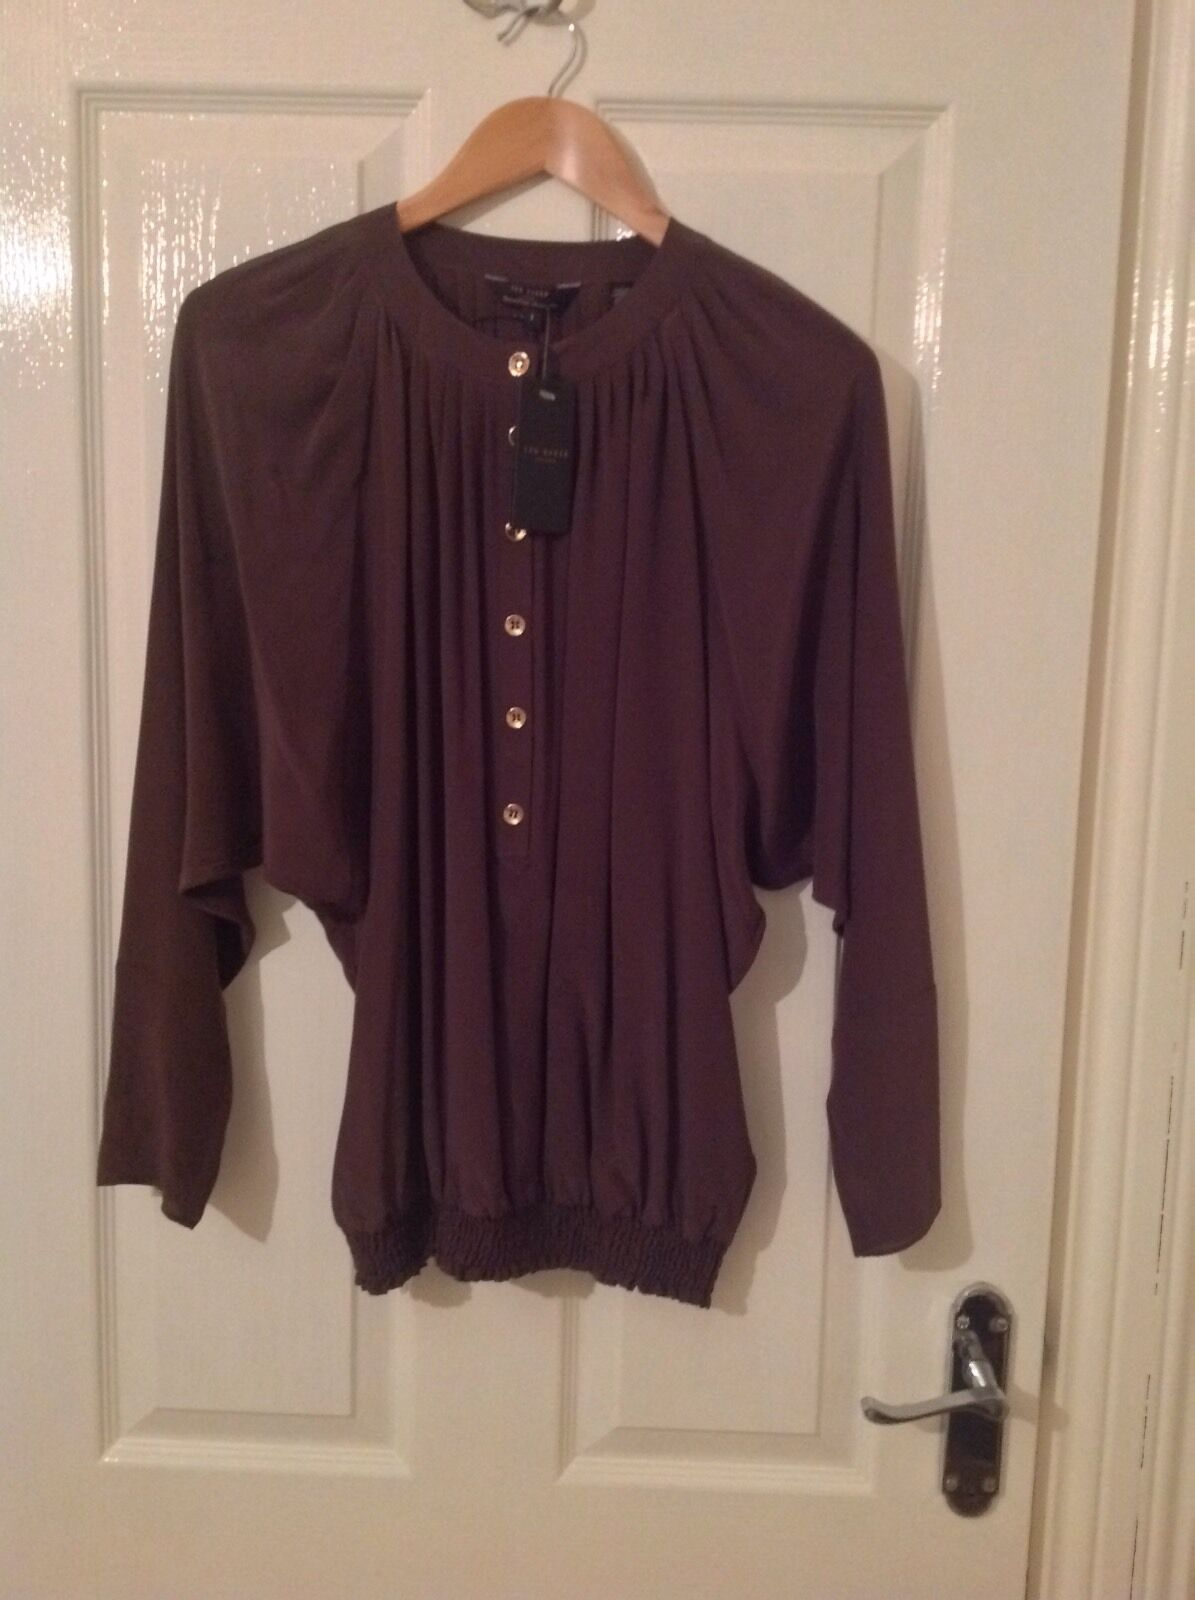 LADIES 'TEDBAKER' BRAND NEW braun SILK BLOUSE. Größe 8 TEDBAKER 1. LABEL ATTACHED